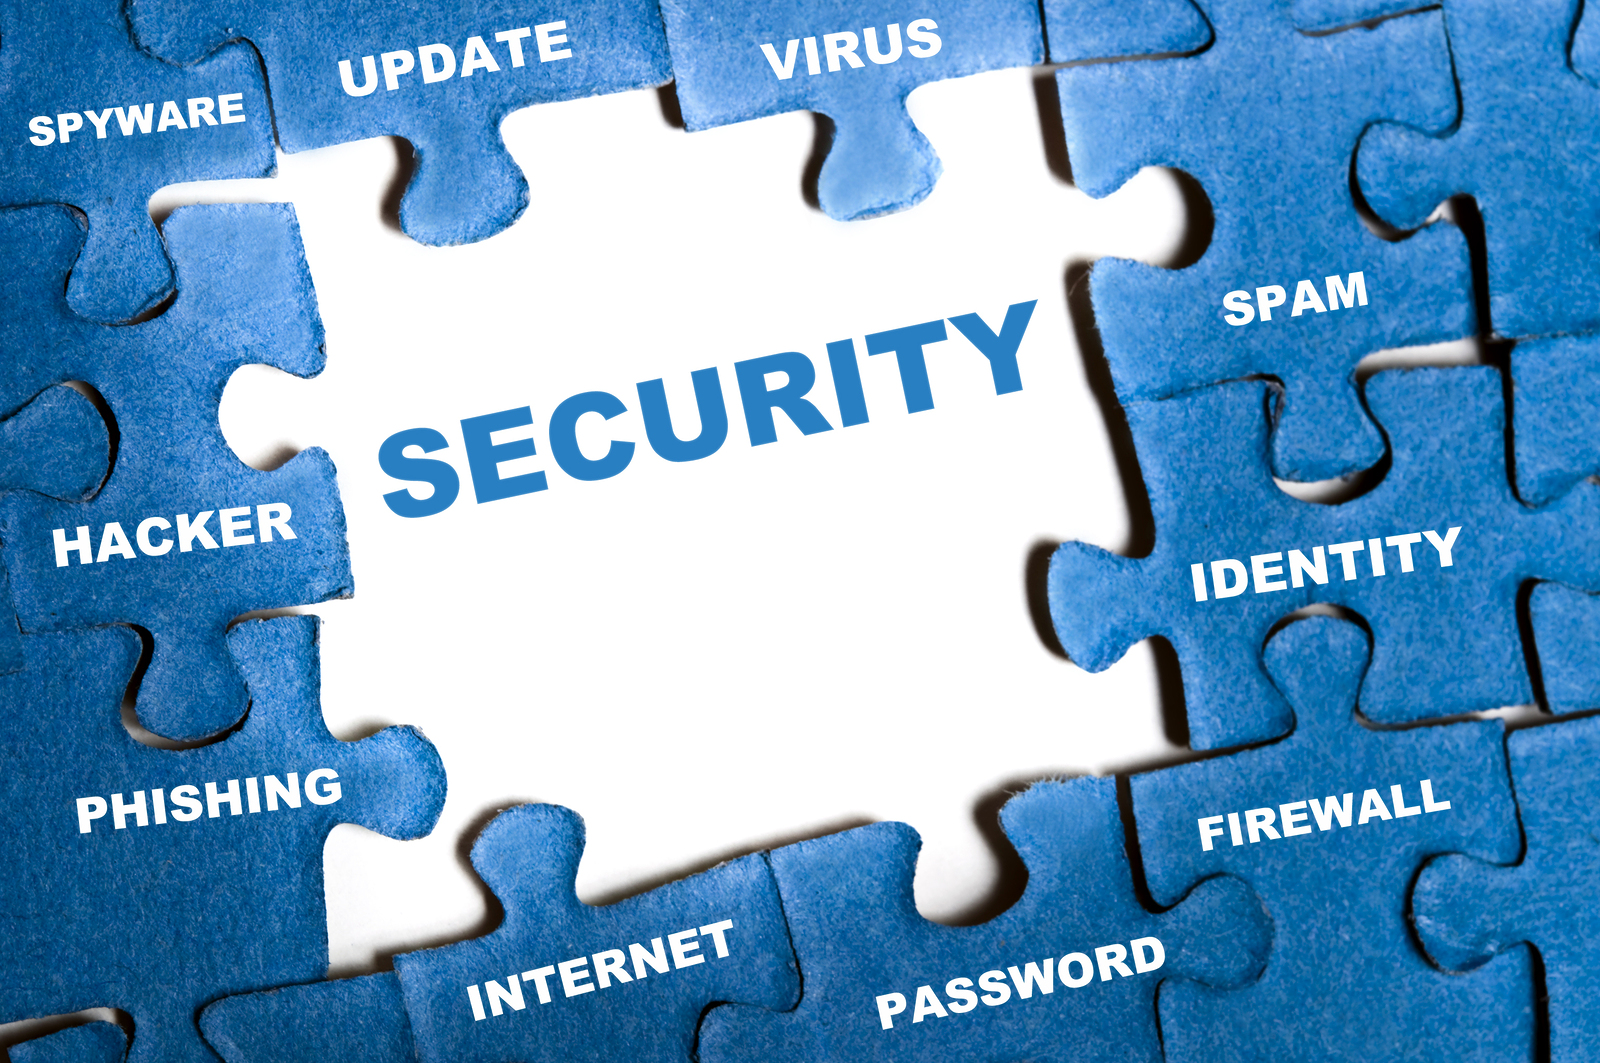 puzzle_Total-Digital-Security-blue-puzzle-pieces-as-27135923.jpg